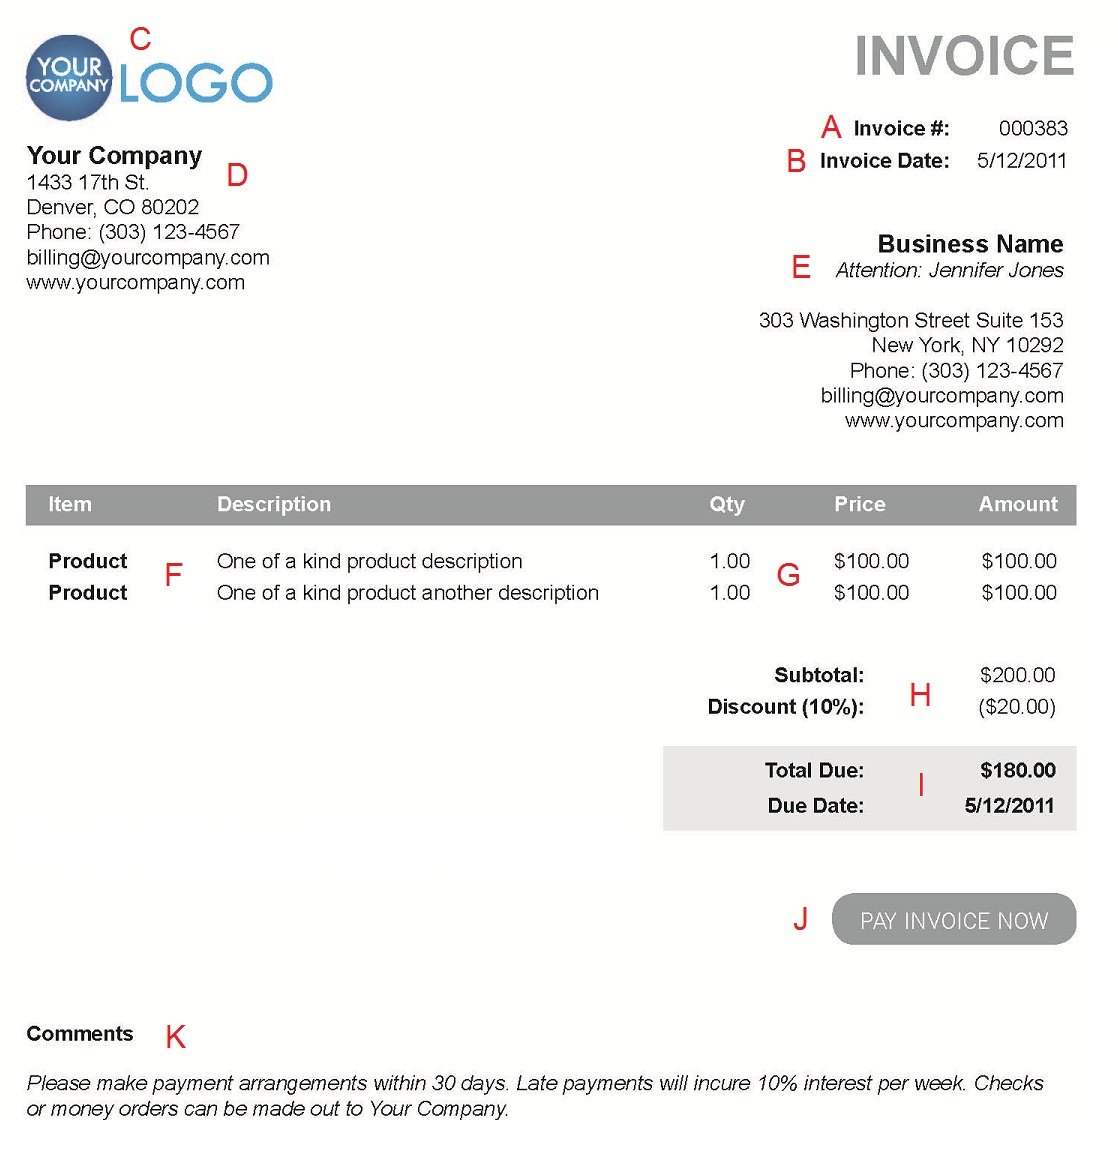 Centralasianshepherdus  Pleasing The  Different Sections Of An Electronic Payment Invoice With Fascinating A  With Agreeable How To Find Dealer Invoice On New Cars Also Pay A Fedex Invoice In Addition Paypal Generate Invoice And Download An Invoice Template As Well As Invoice Pouch Additionally Best Free Invoice Software From Paysimplecom With Centralasianshepherdus  Fascinating The  Different Sections Of An Electronic Payment Invoice With Agreeable A  And Pleasing How To Find Dealer Invoice On New Cars Also Pay A Fedex Invoice In Addition Paypal Generate Invoice From Paysimplecom